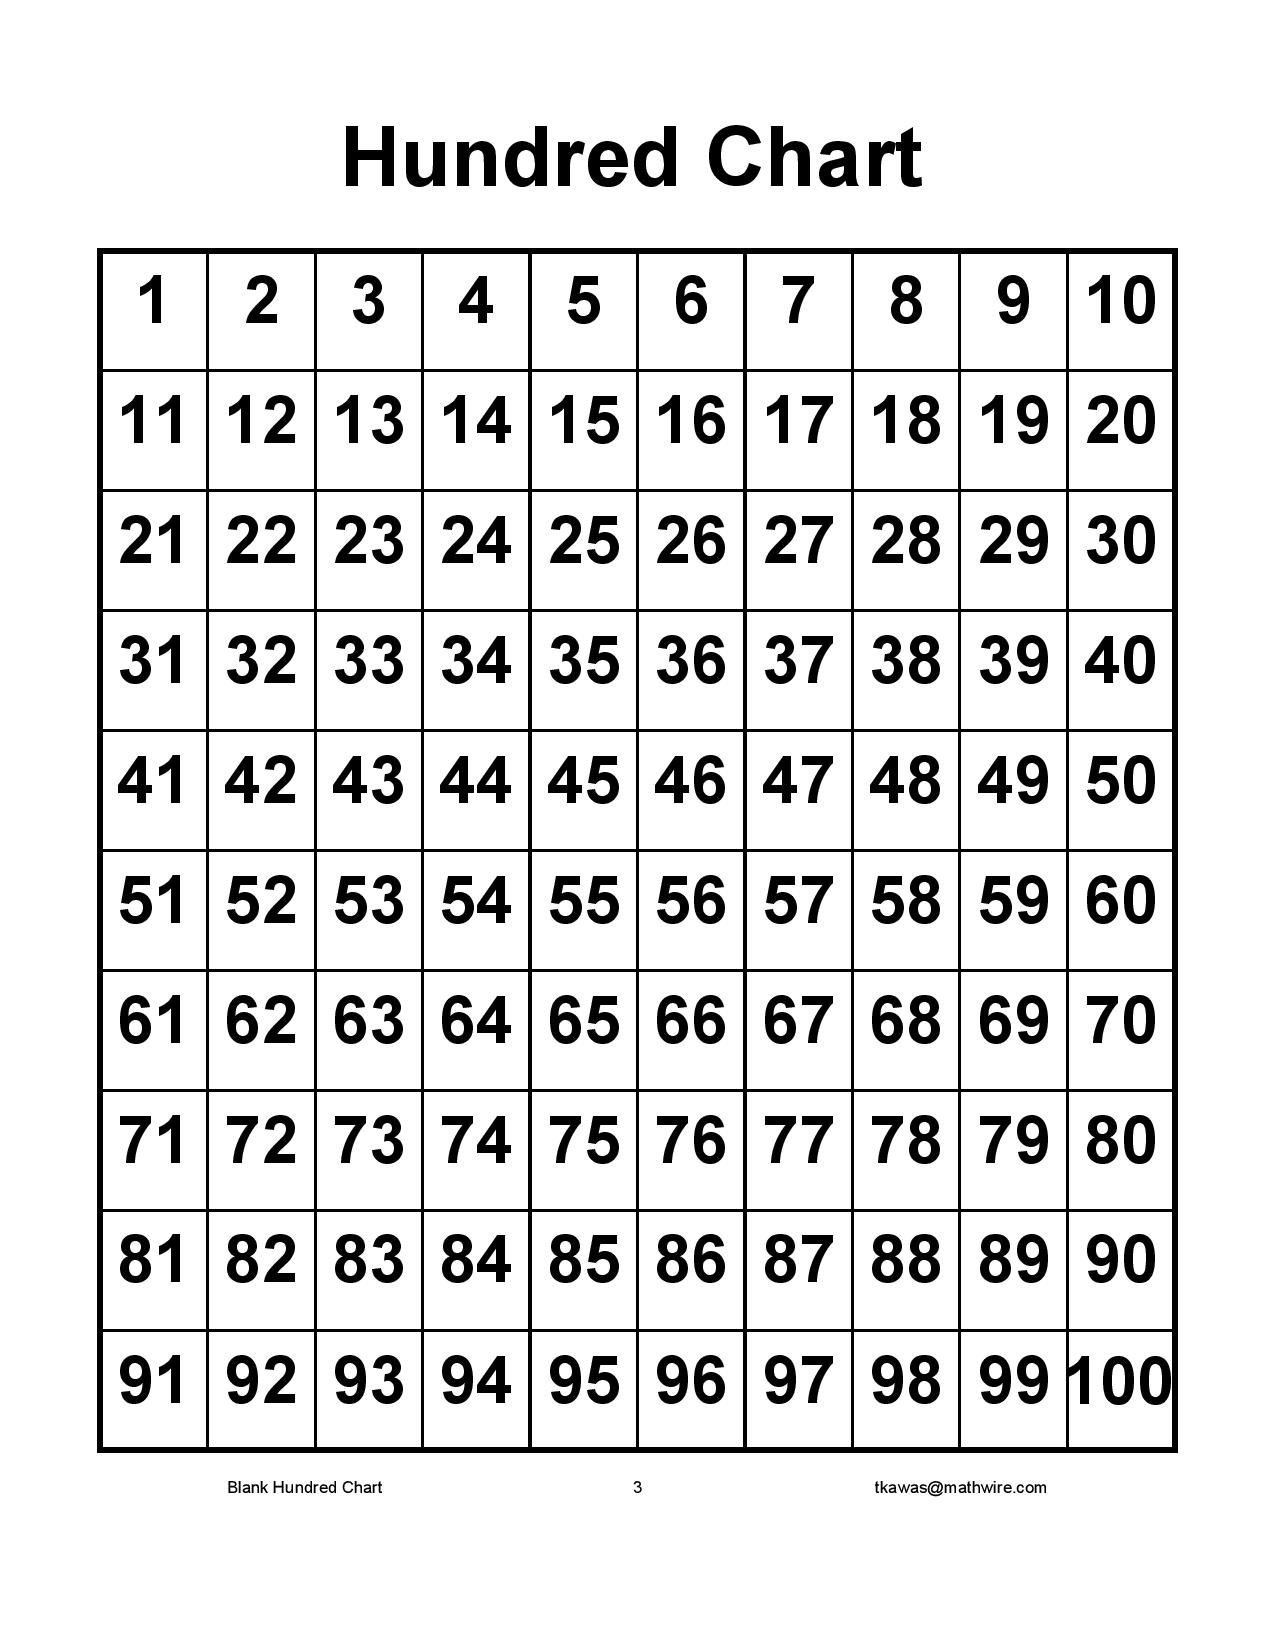 Printable 100 Chart Elementary Math Worksheets For All Download And Share Worksheets Free On Bonlacfood Math Charts Hundreds Chart Printable Hundreds Chart